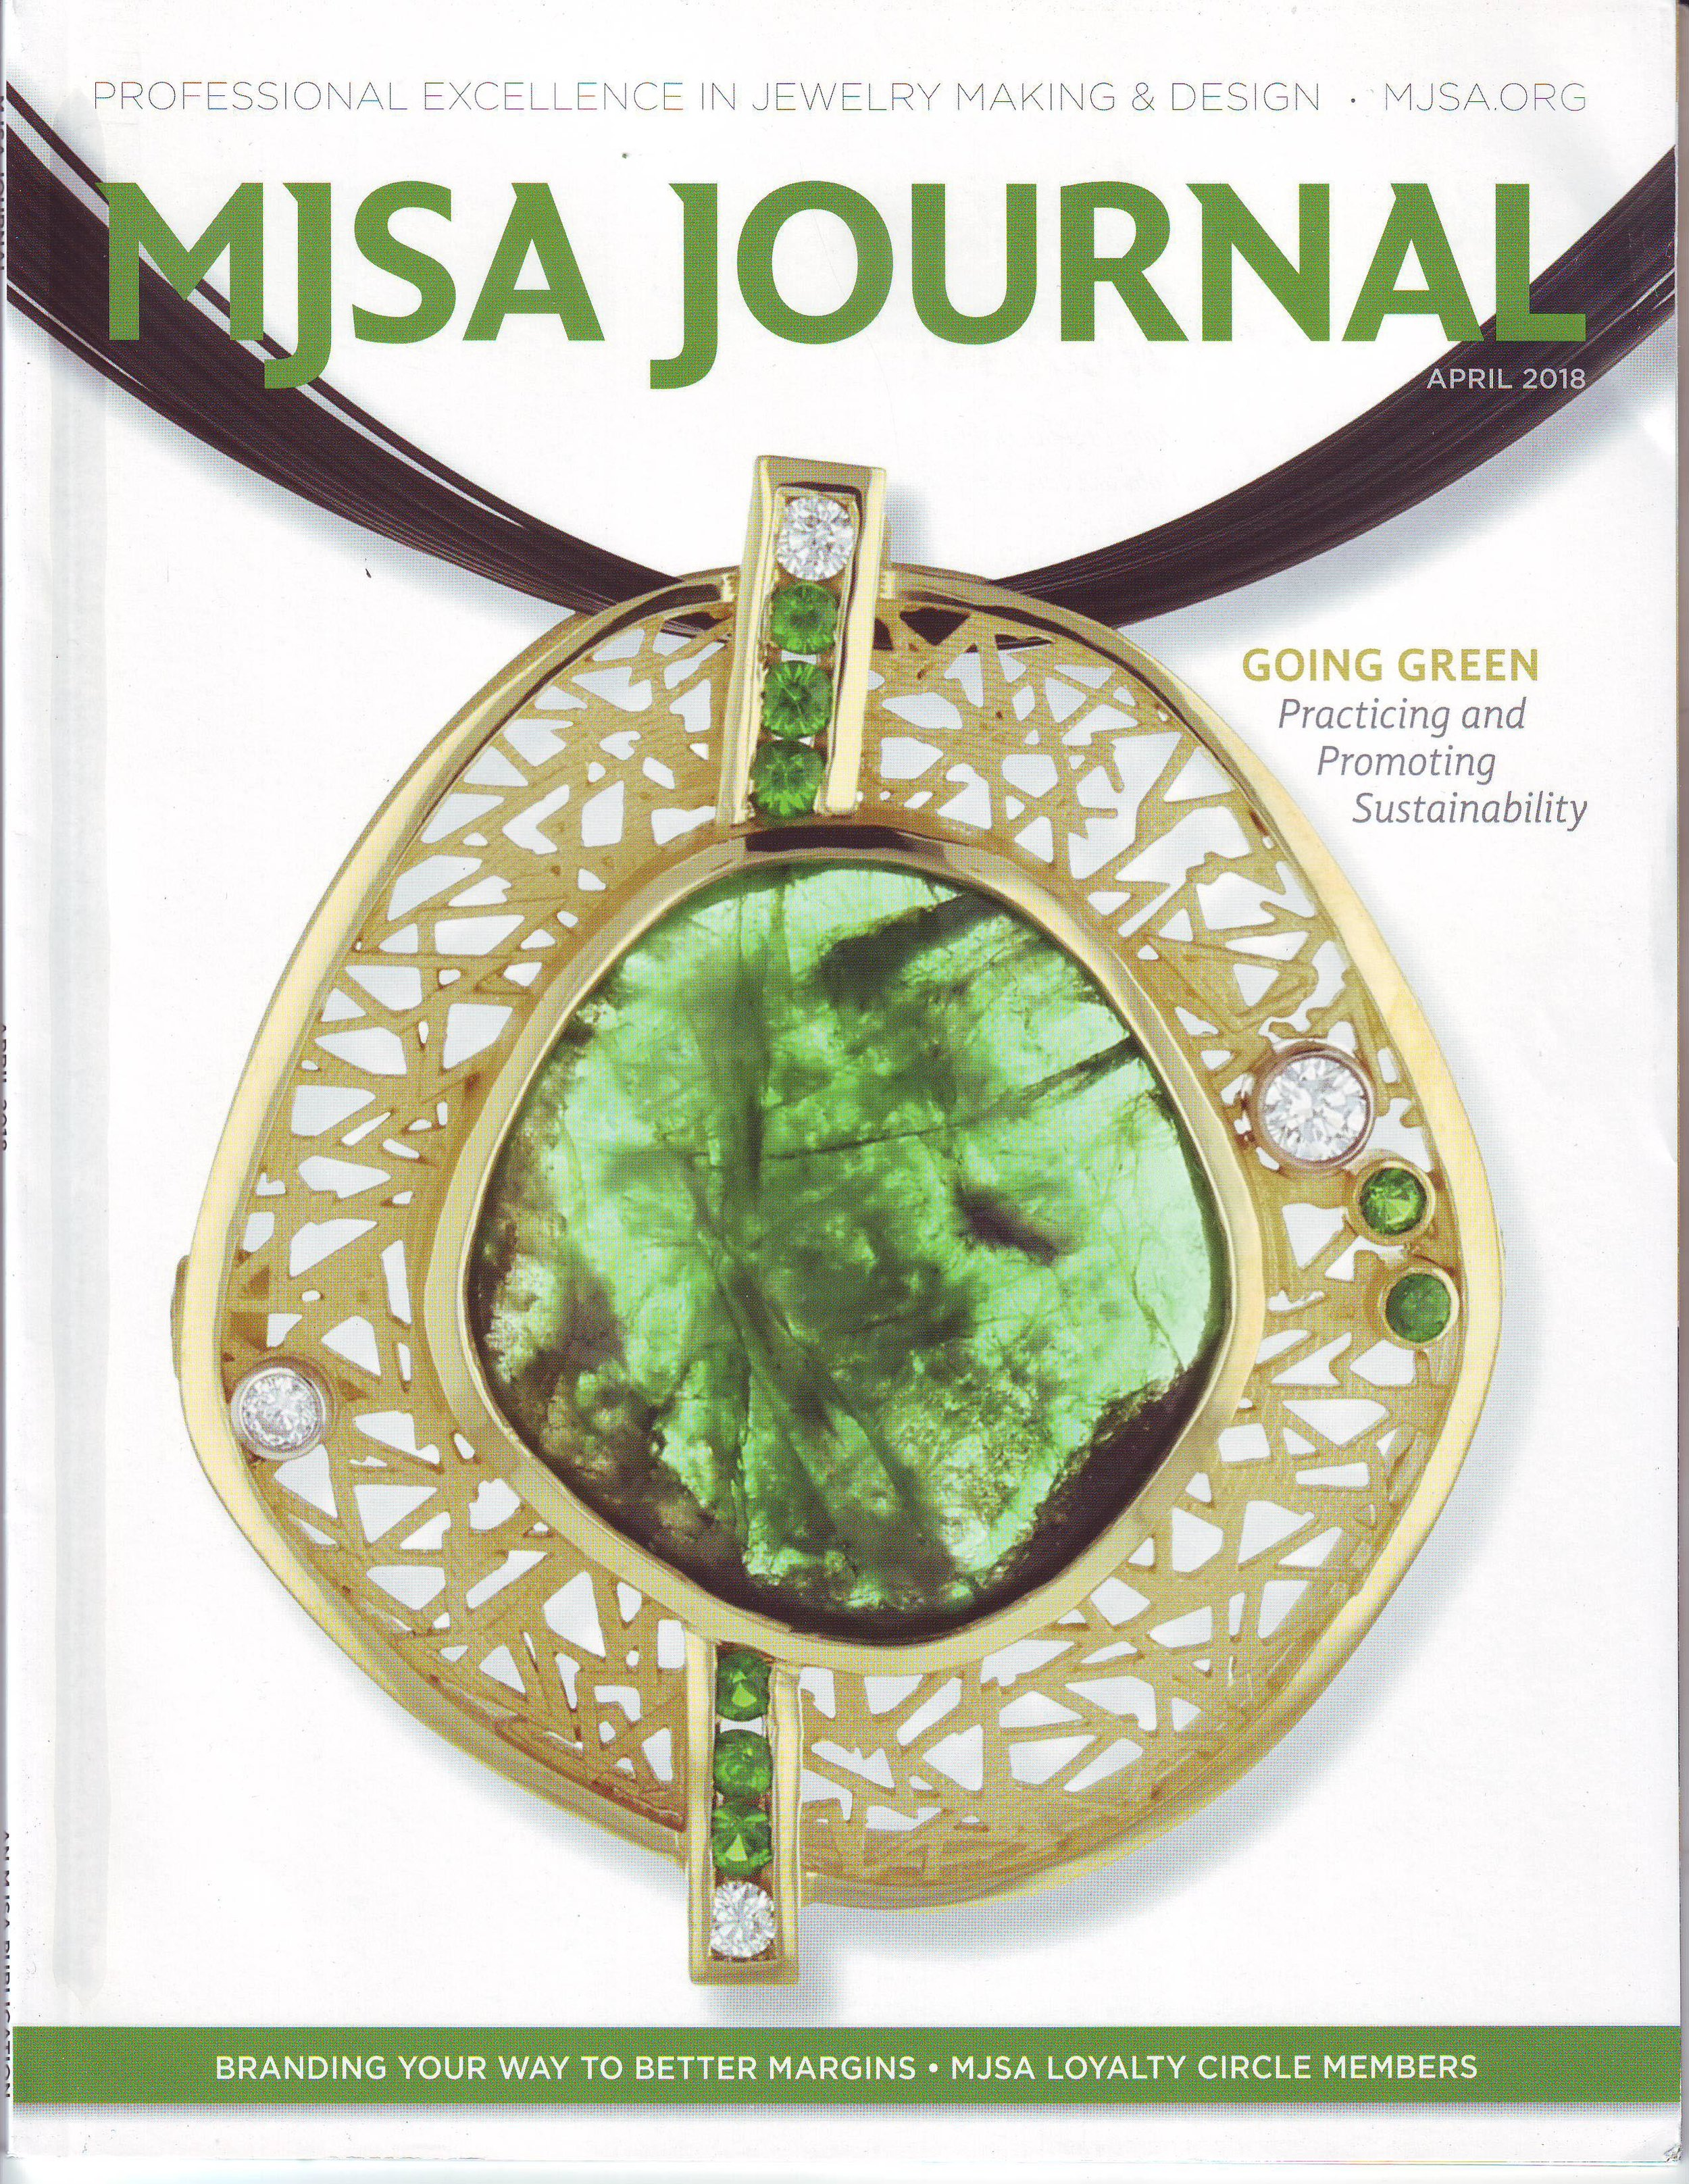 Molly Hollingsworth and Bryson Robert's emerald, tsavorite garnet, diamond and 18KY pendant featured on the cover of MJSA magazine's green practices issue.